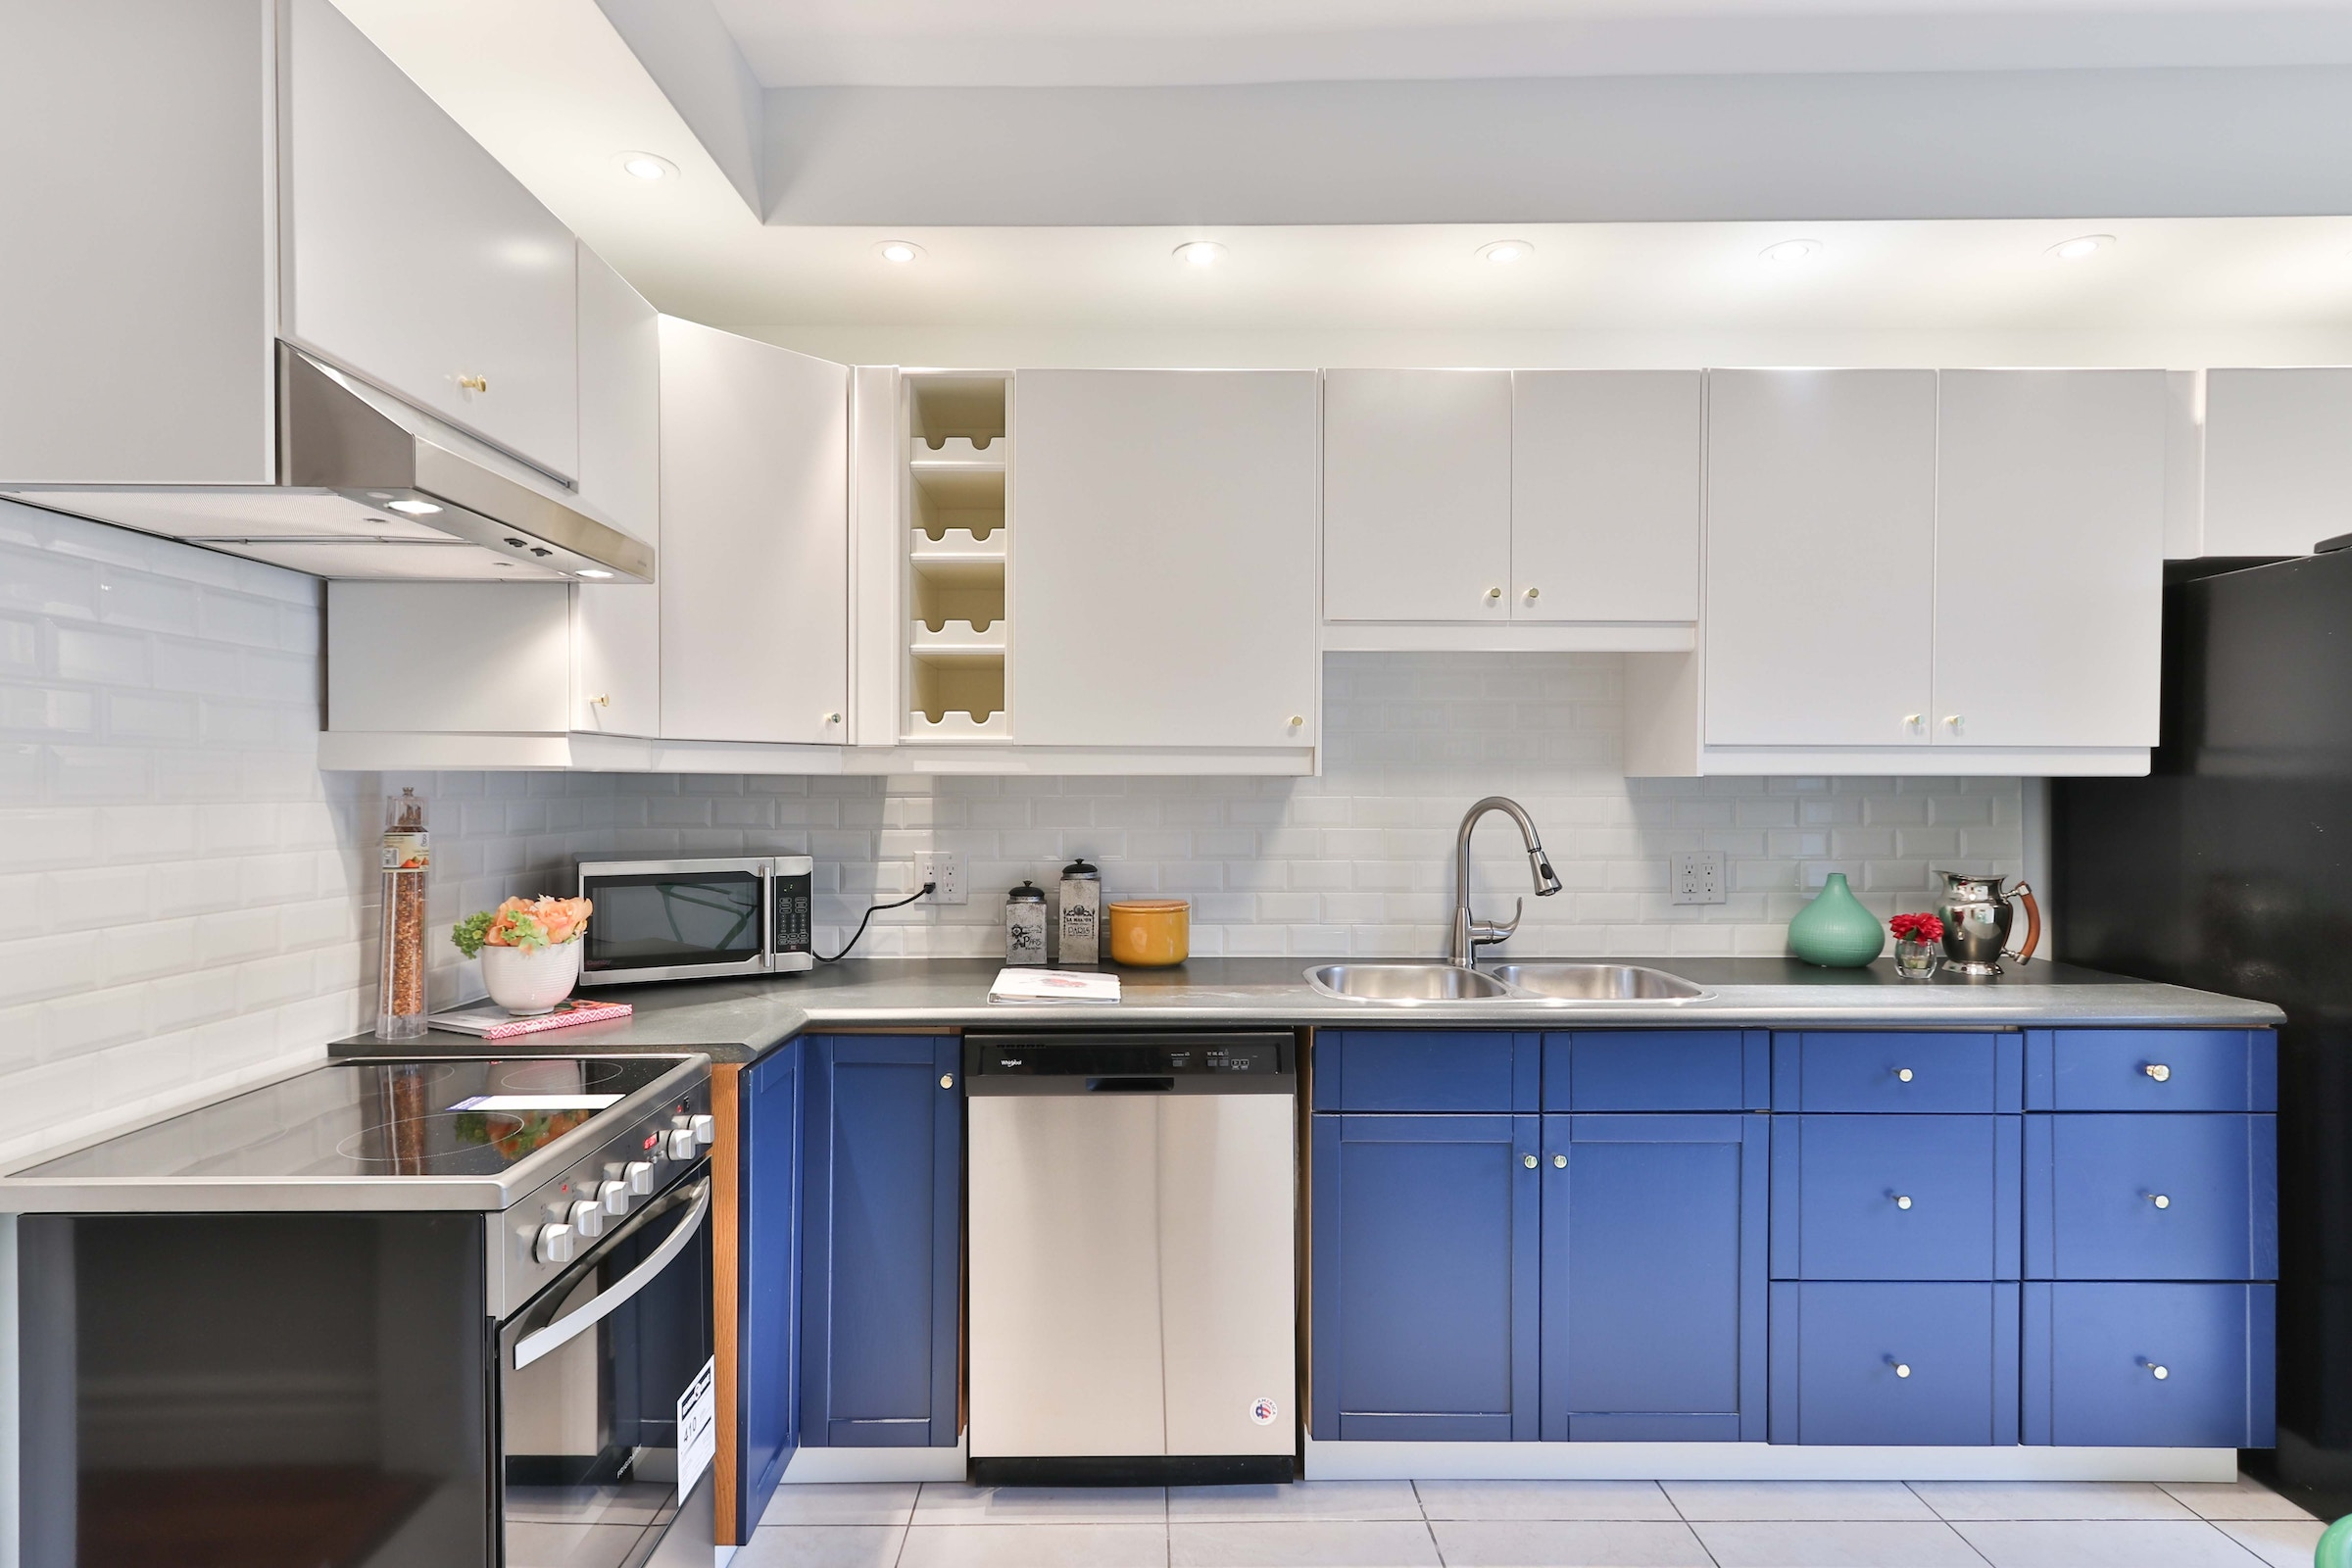 We're loving the two-toned kitchen look that's trending right now!